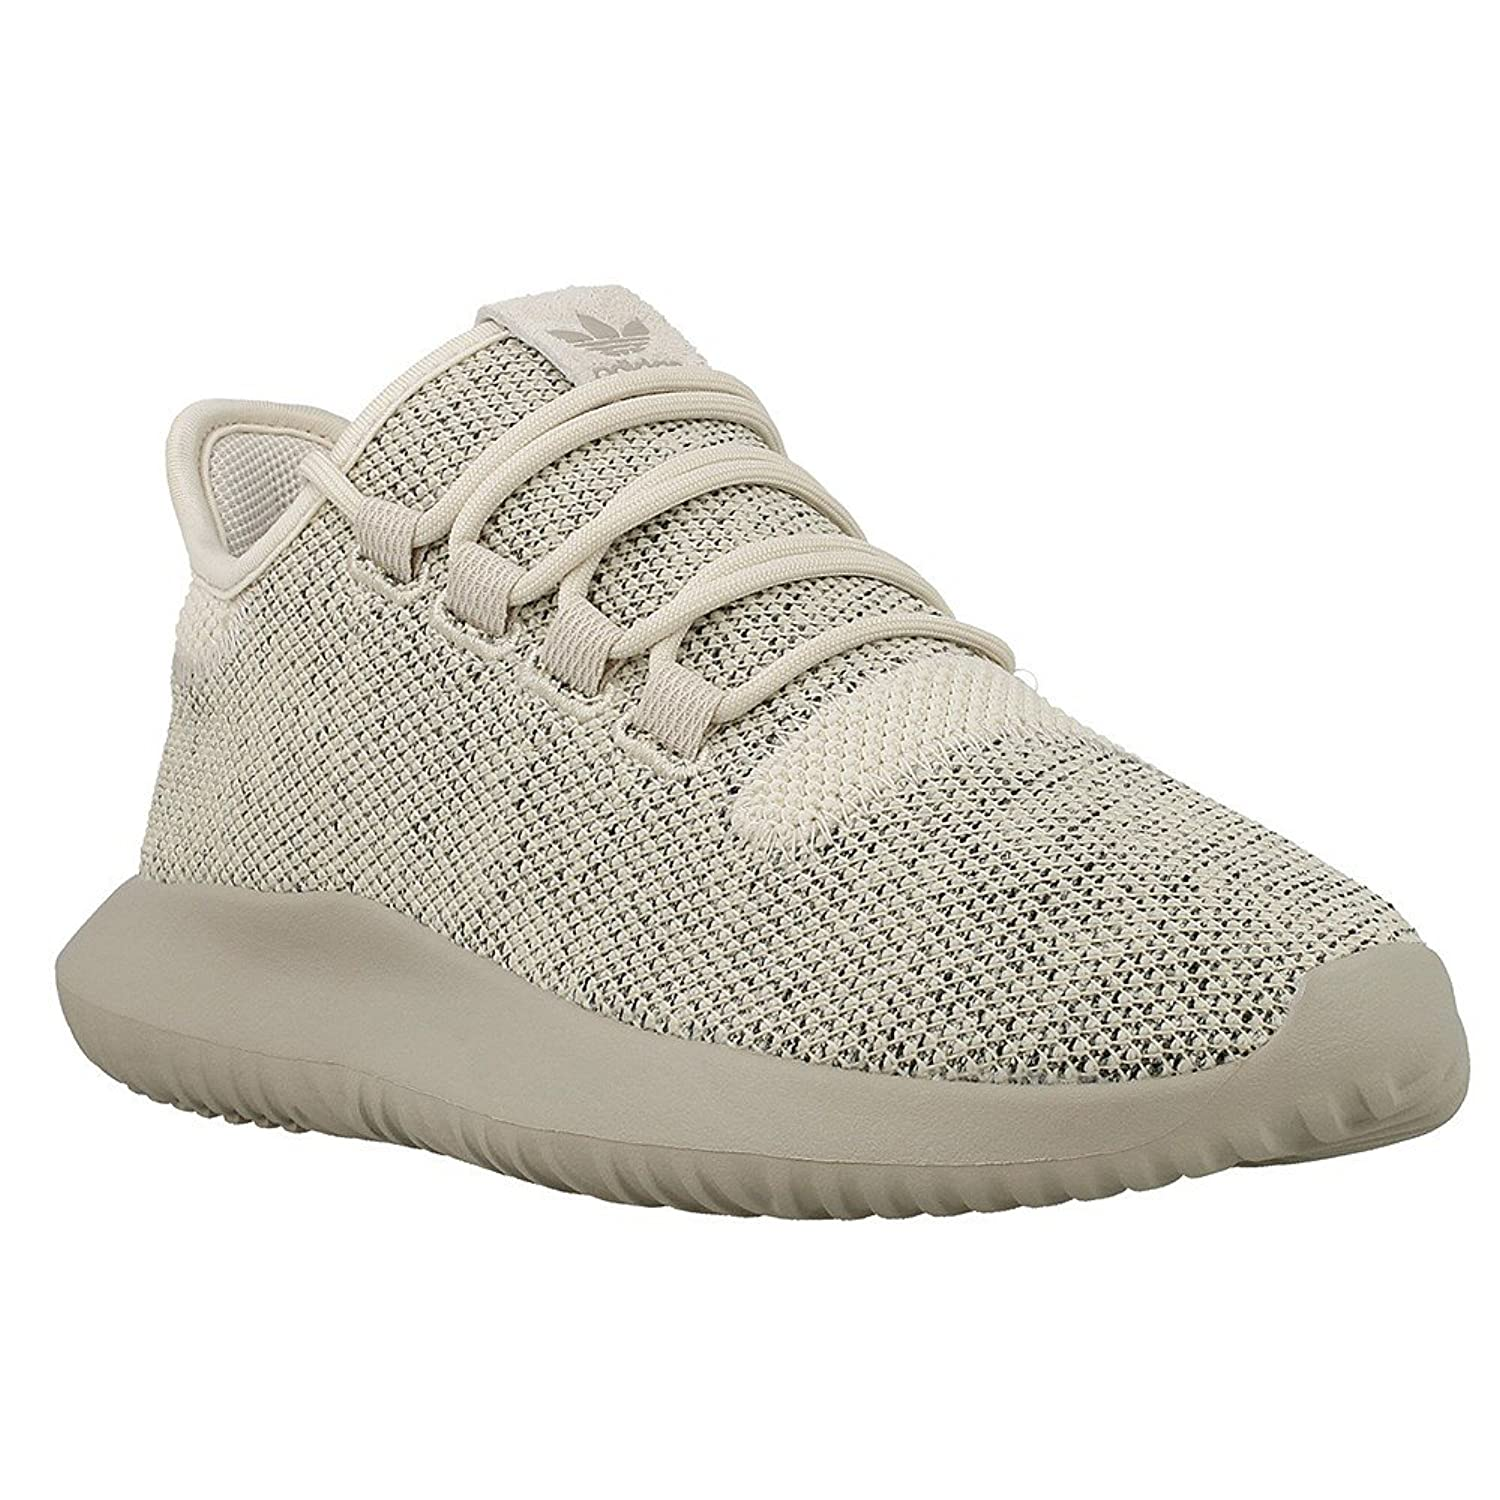 adidas Originals Tubular Shadow Knit Men's Running Shoes